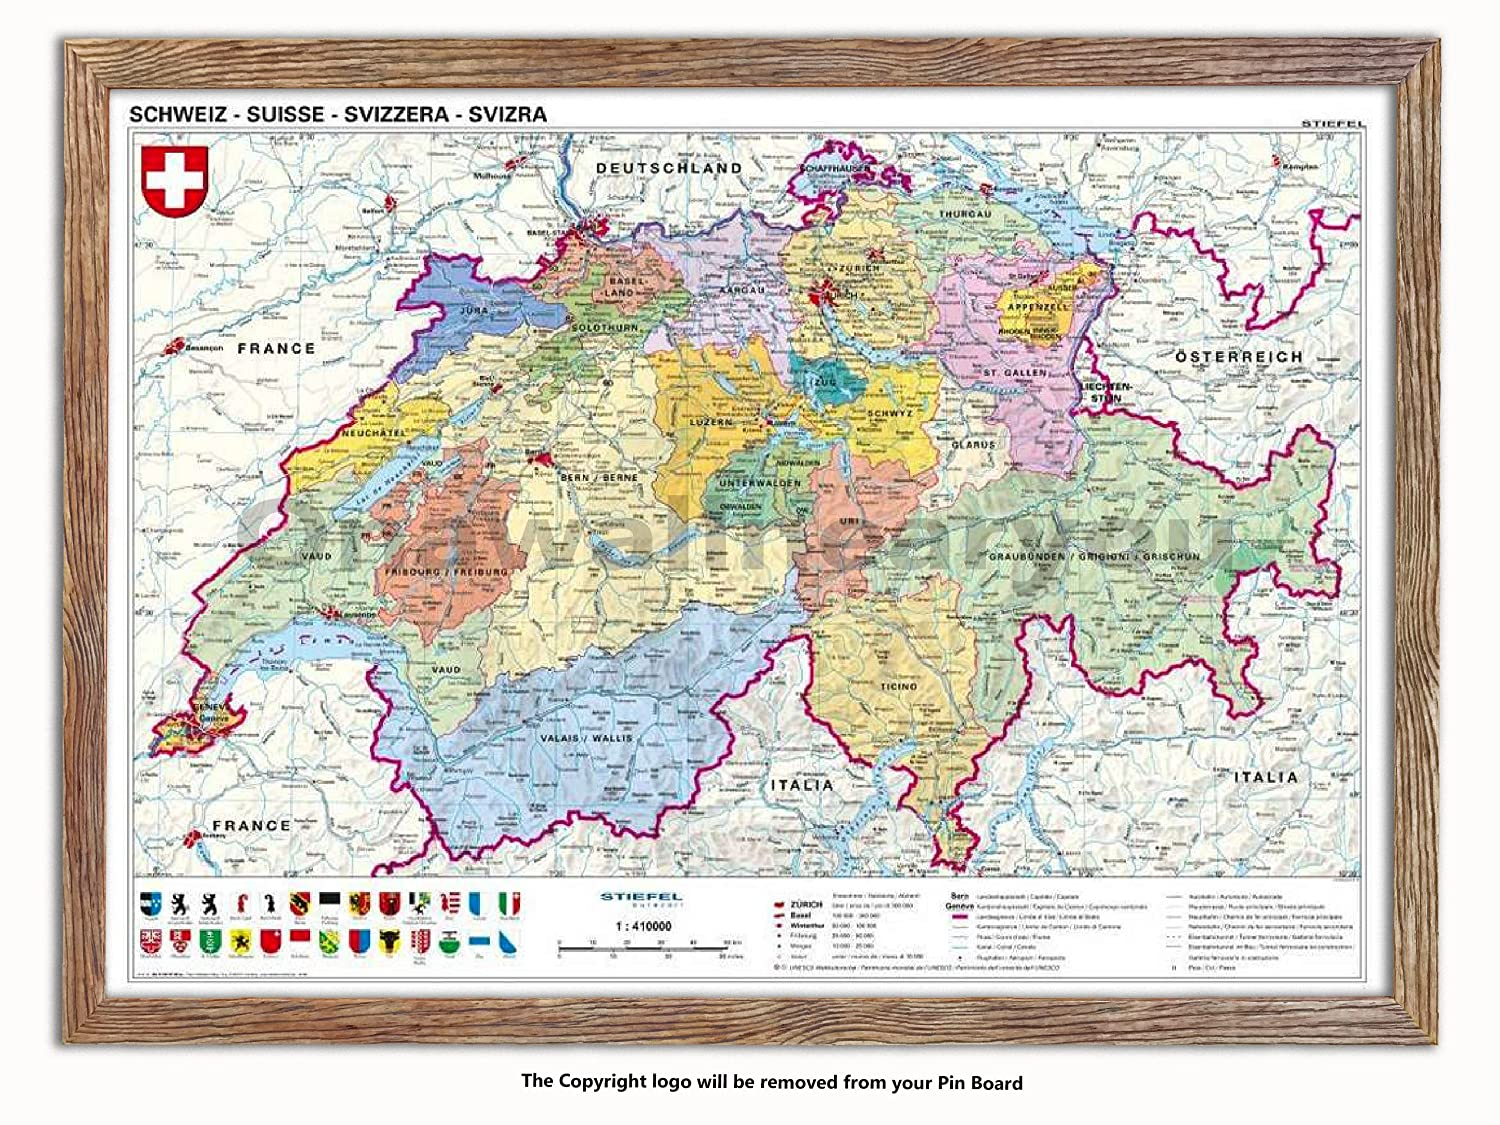 Laminated Posters Framed - Map Of Switzerland - Push Pin Memo Notice Board - White Driftwood Effect - Matt Finish - Measures 96.5 x 66 cms (38 x 26 Inches - Approx)